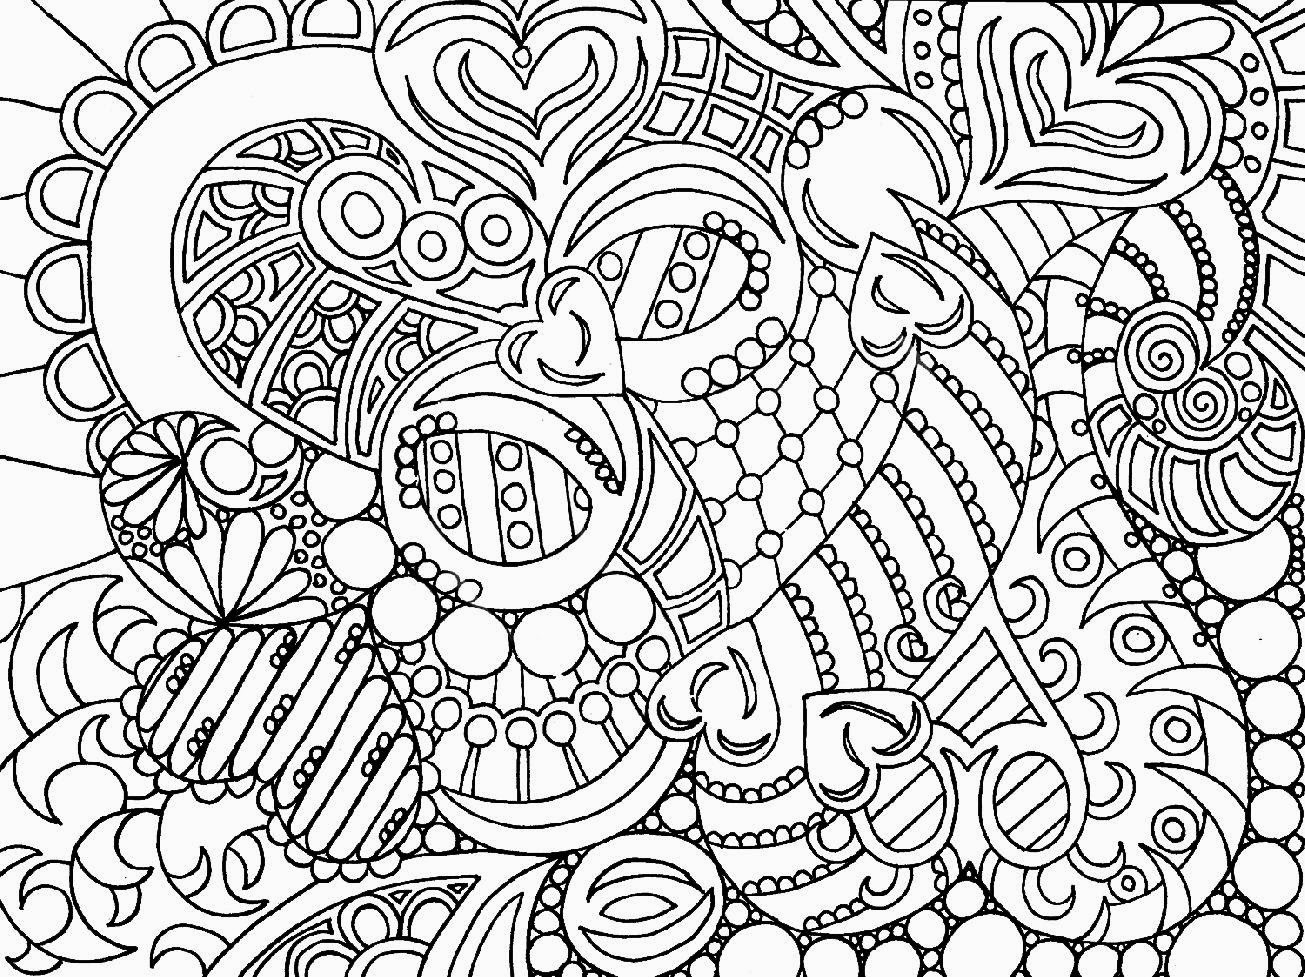 Adult Coloring Sheets Free Coloring Sheet Free Printable Coloring Pages For Adults